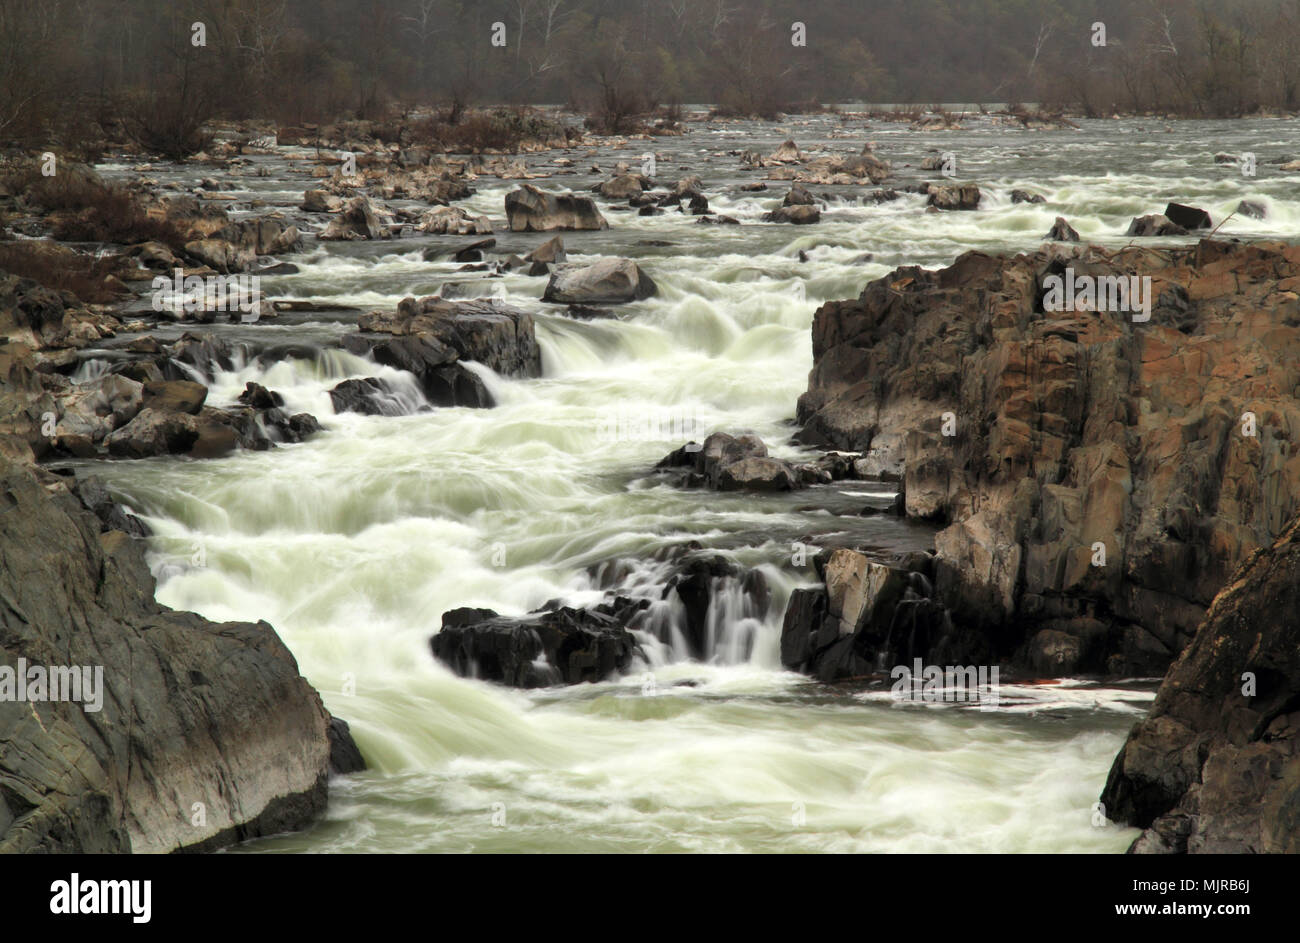 Great Falls of the Potomac as viewed from Great Falls Park in the state of Virginia - Stock Image